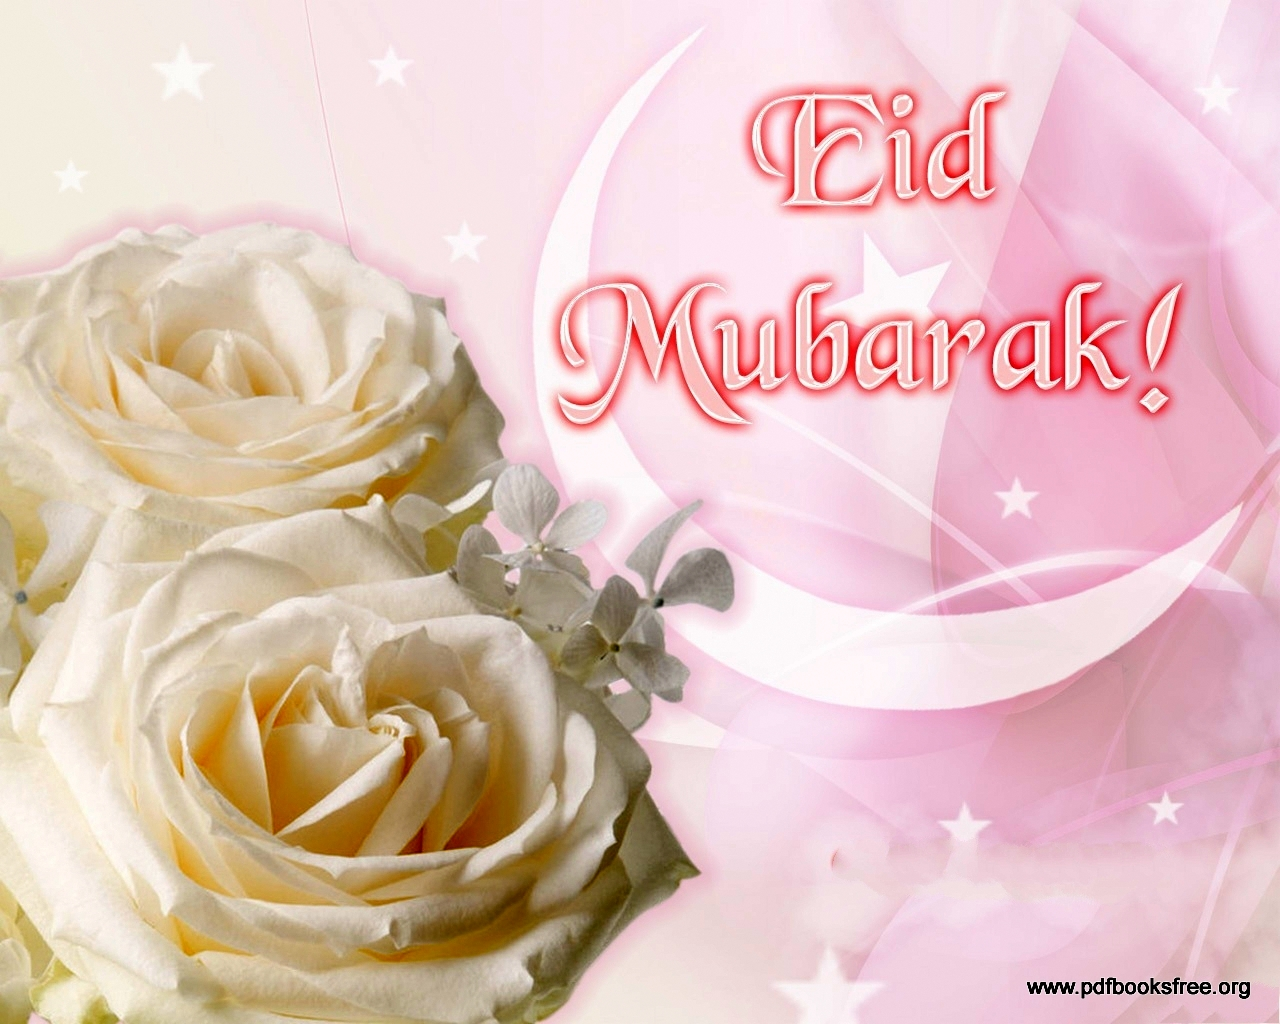 Eid ul adha mubarak cards 2013 latest eid cards eid and eid banners eid greetings card kristyandbryce Image collections